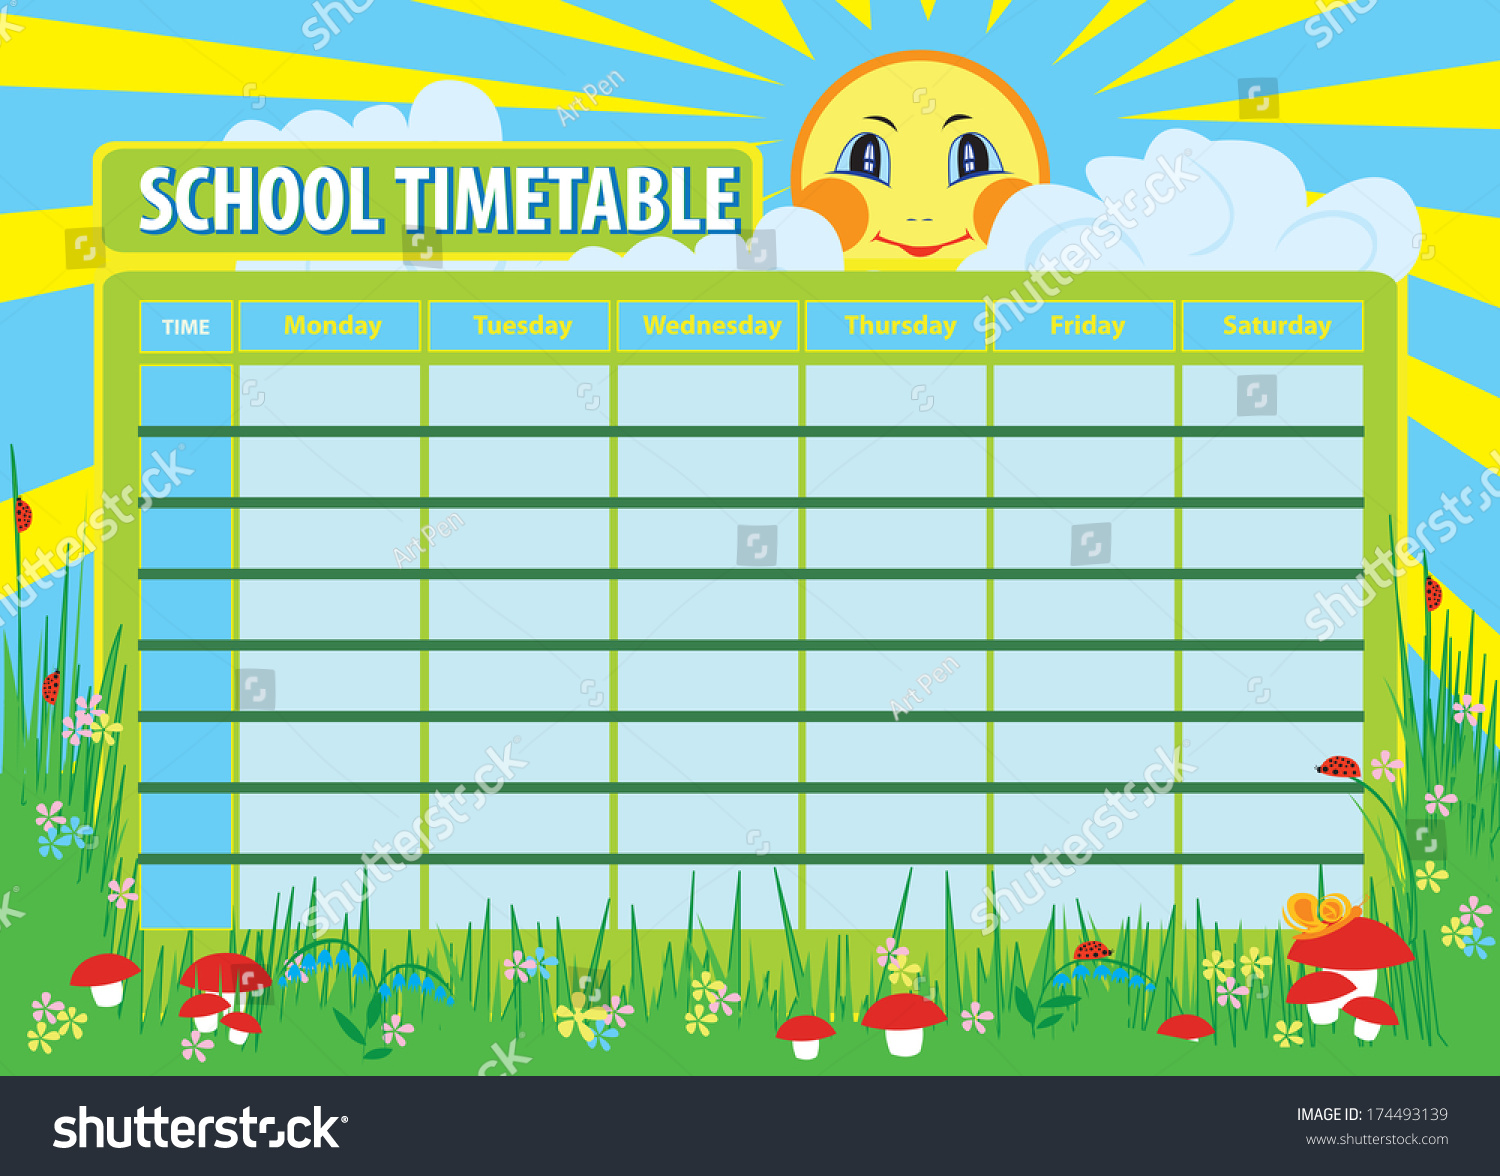 Timetable Layout For School Printable Editable Blank – Word Timetable Template